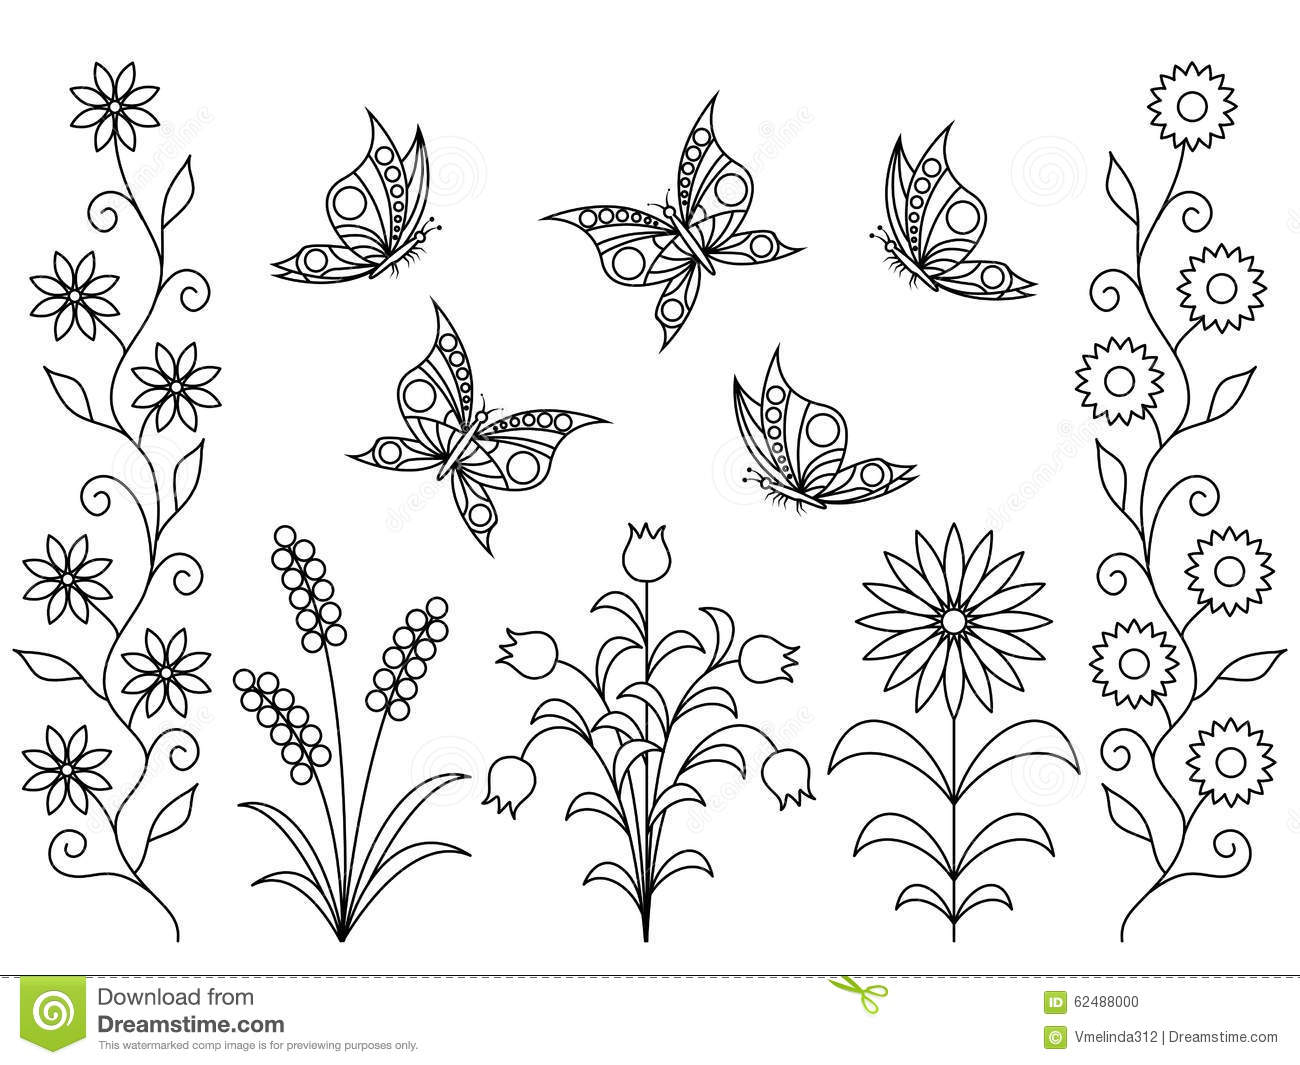 background book butterflies coloring elements flowers - Coloring Book Flowers